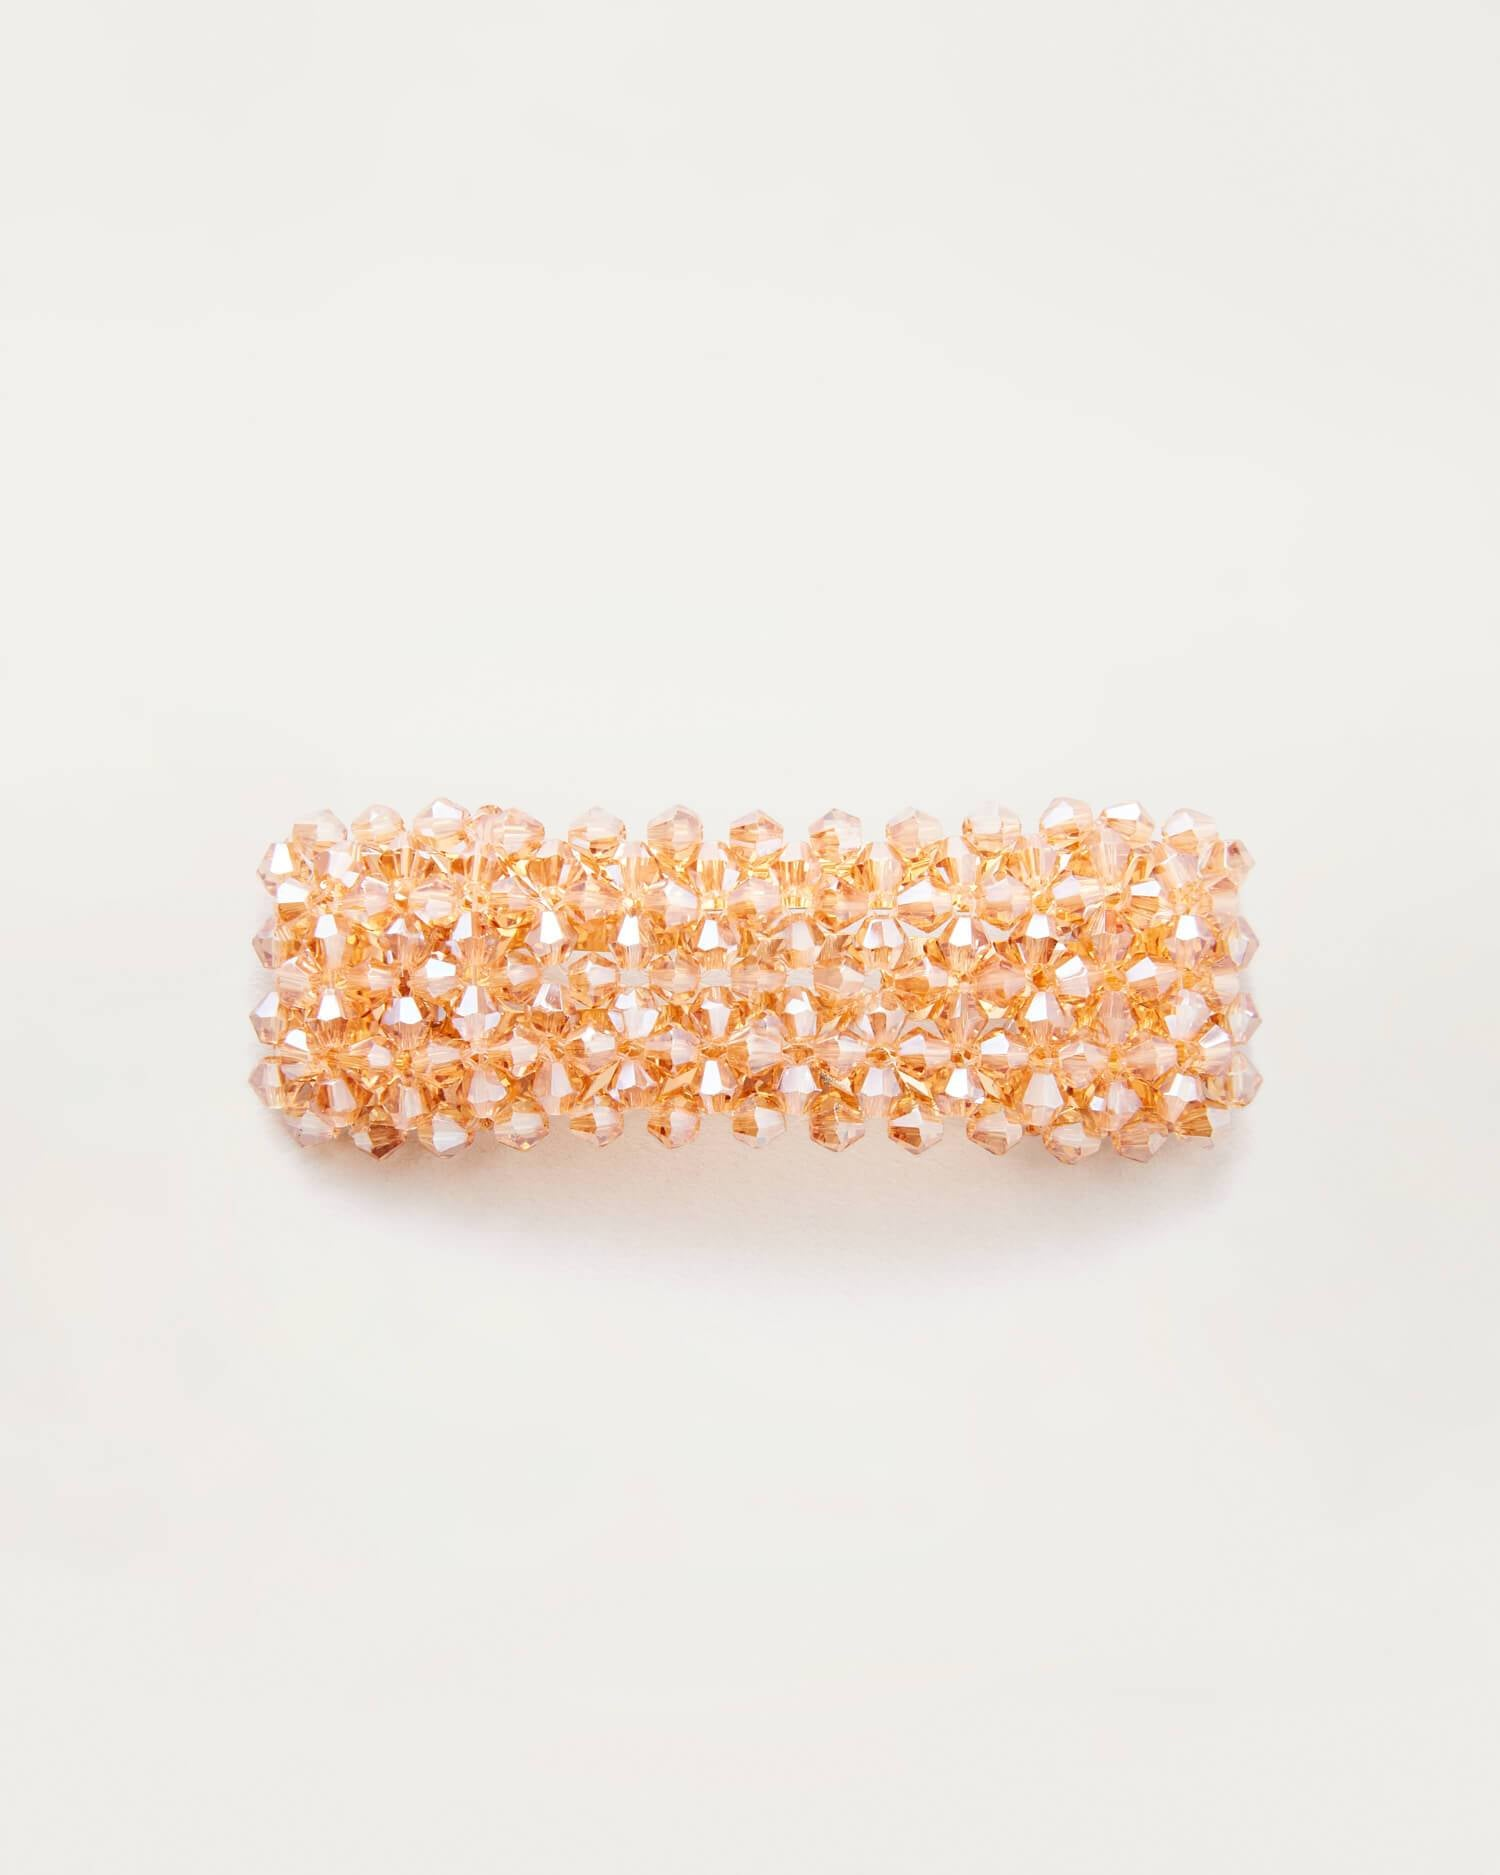 color:Champagne beads